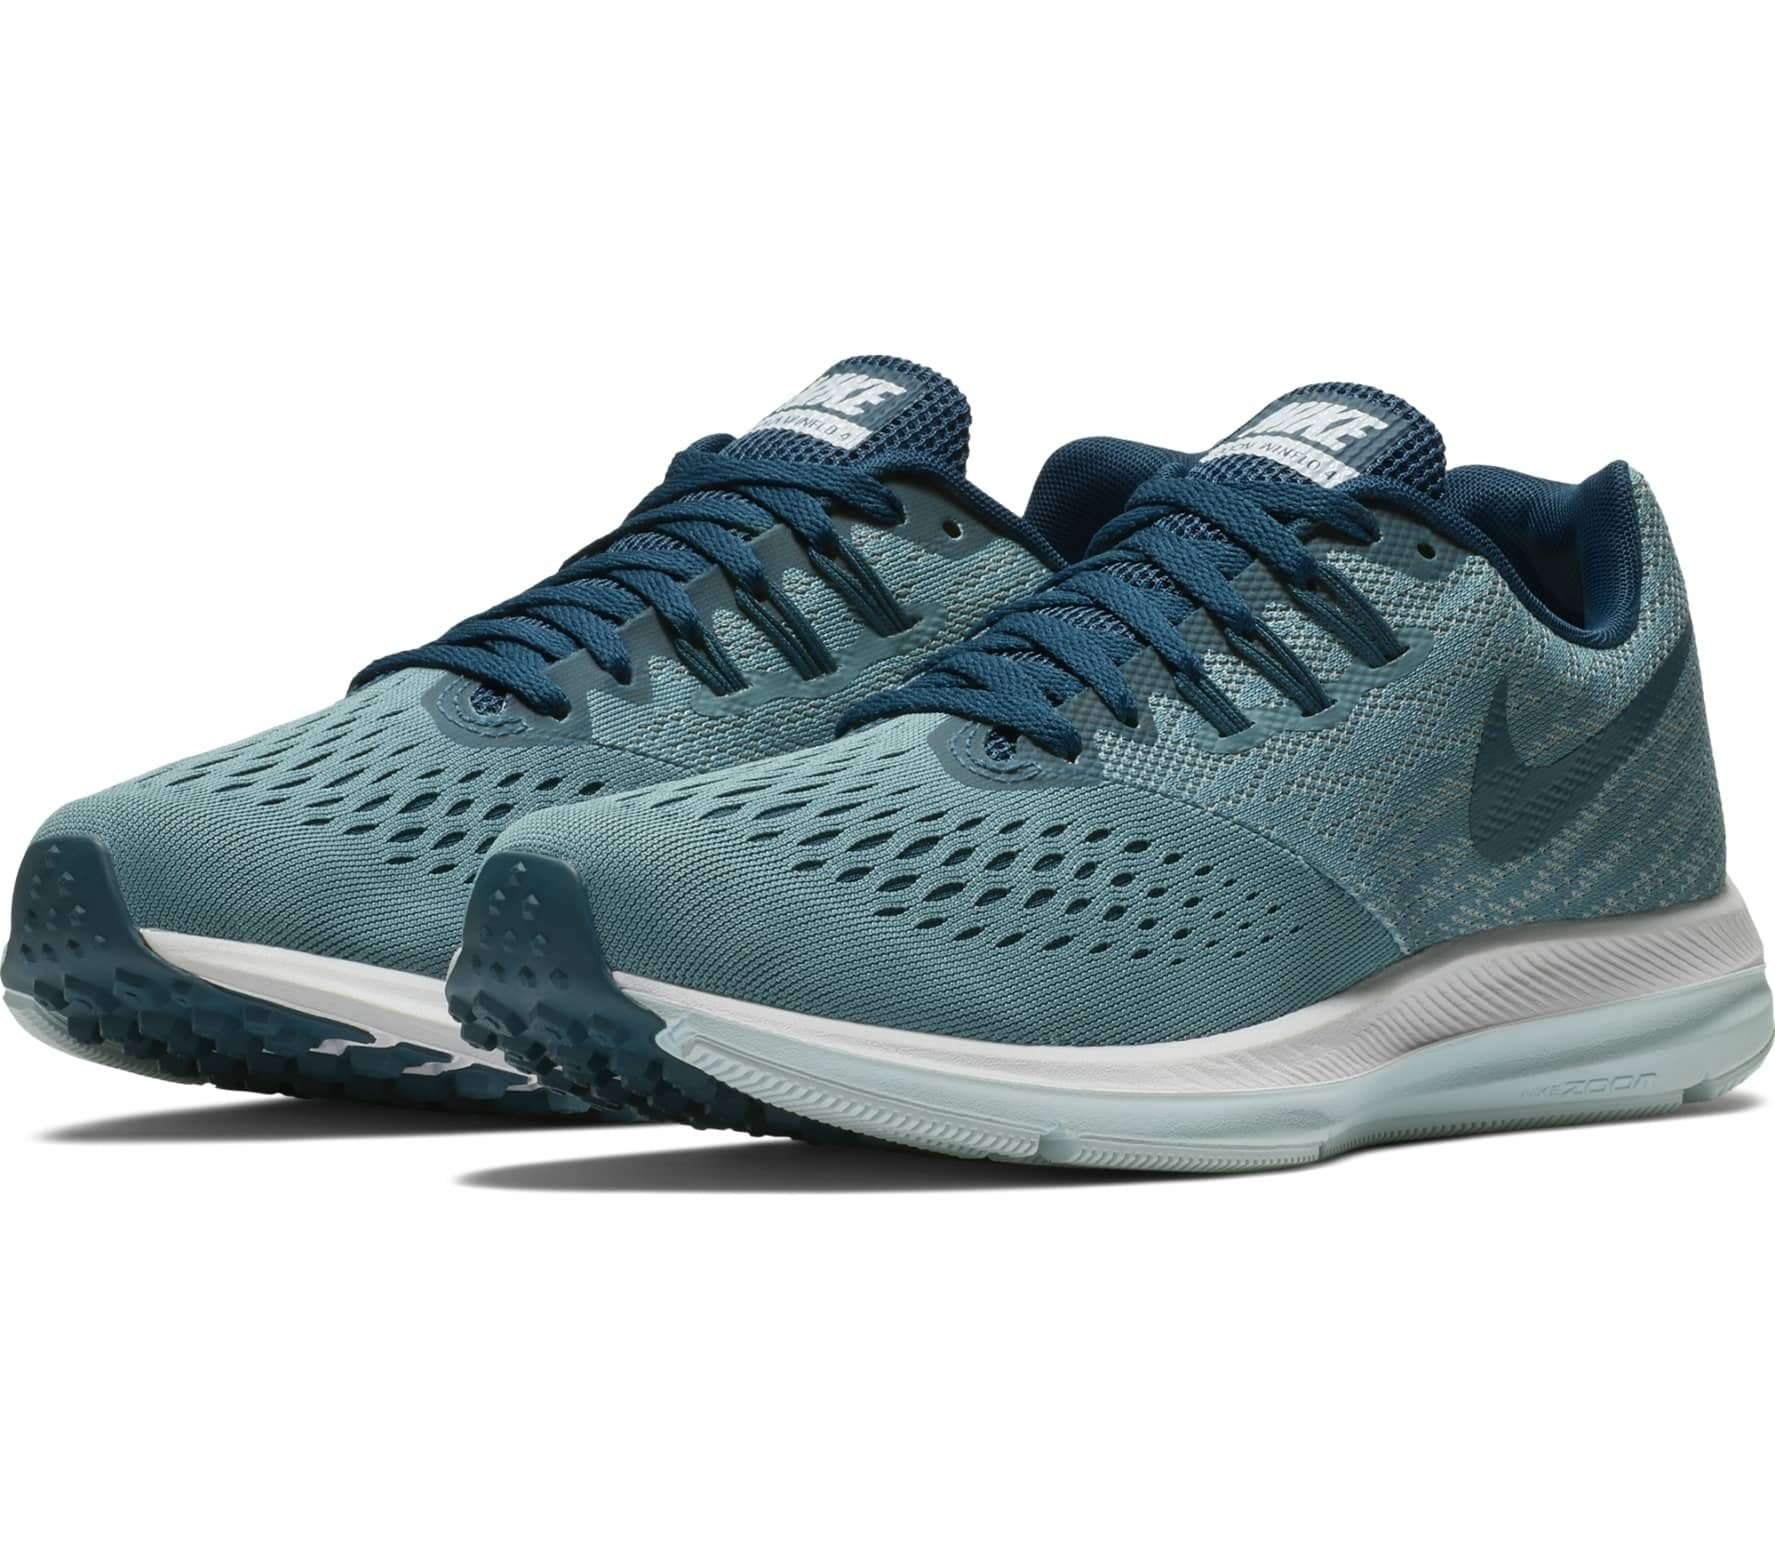 Nike Air Zoom Winflo 4 Damen